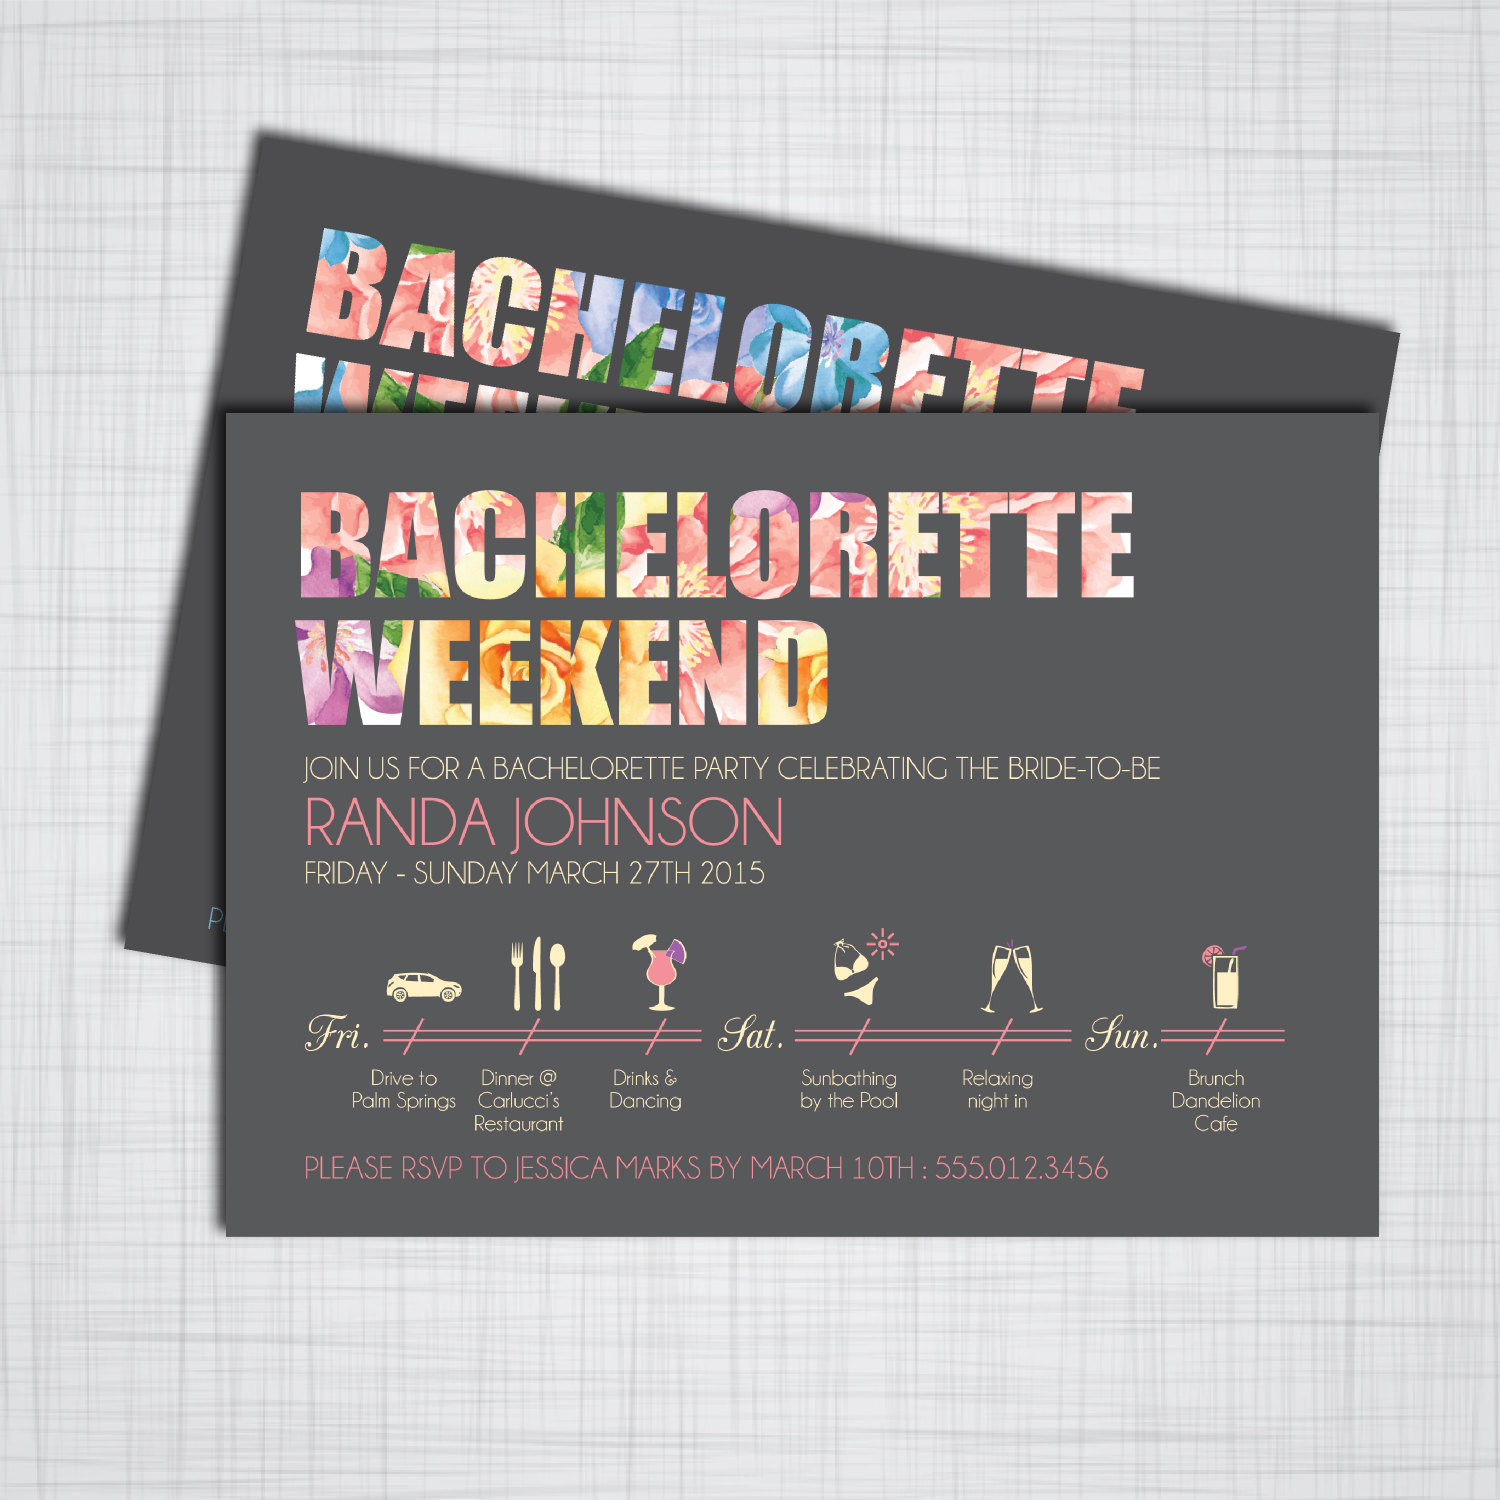 Bachelorette Party Invitation Ideas  Bachelorette Party Weekend DIY Printable Invitations with